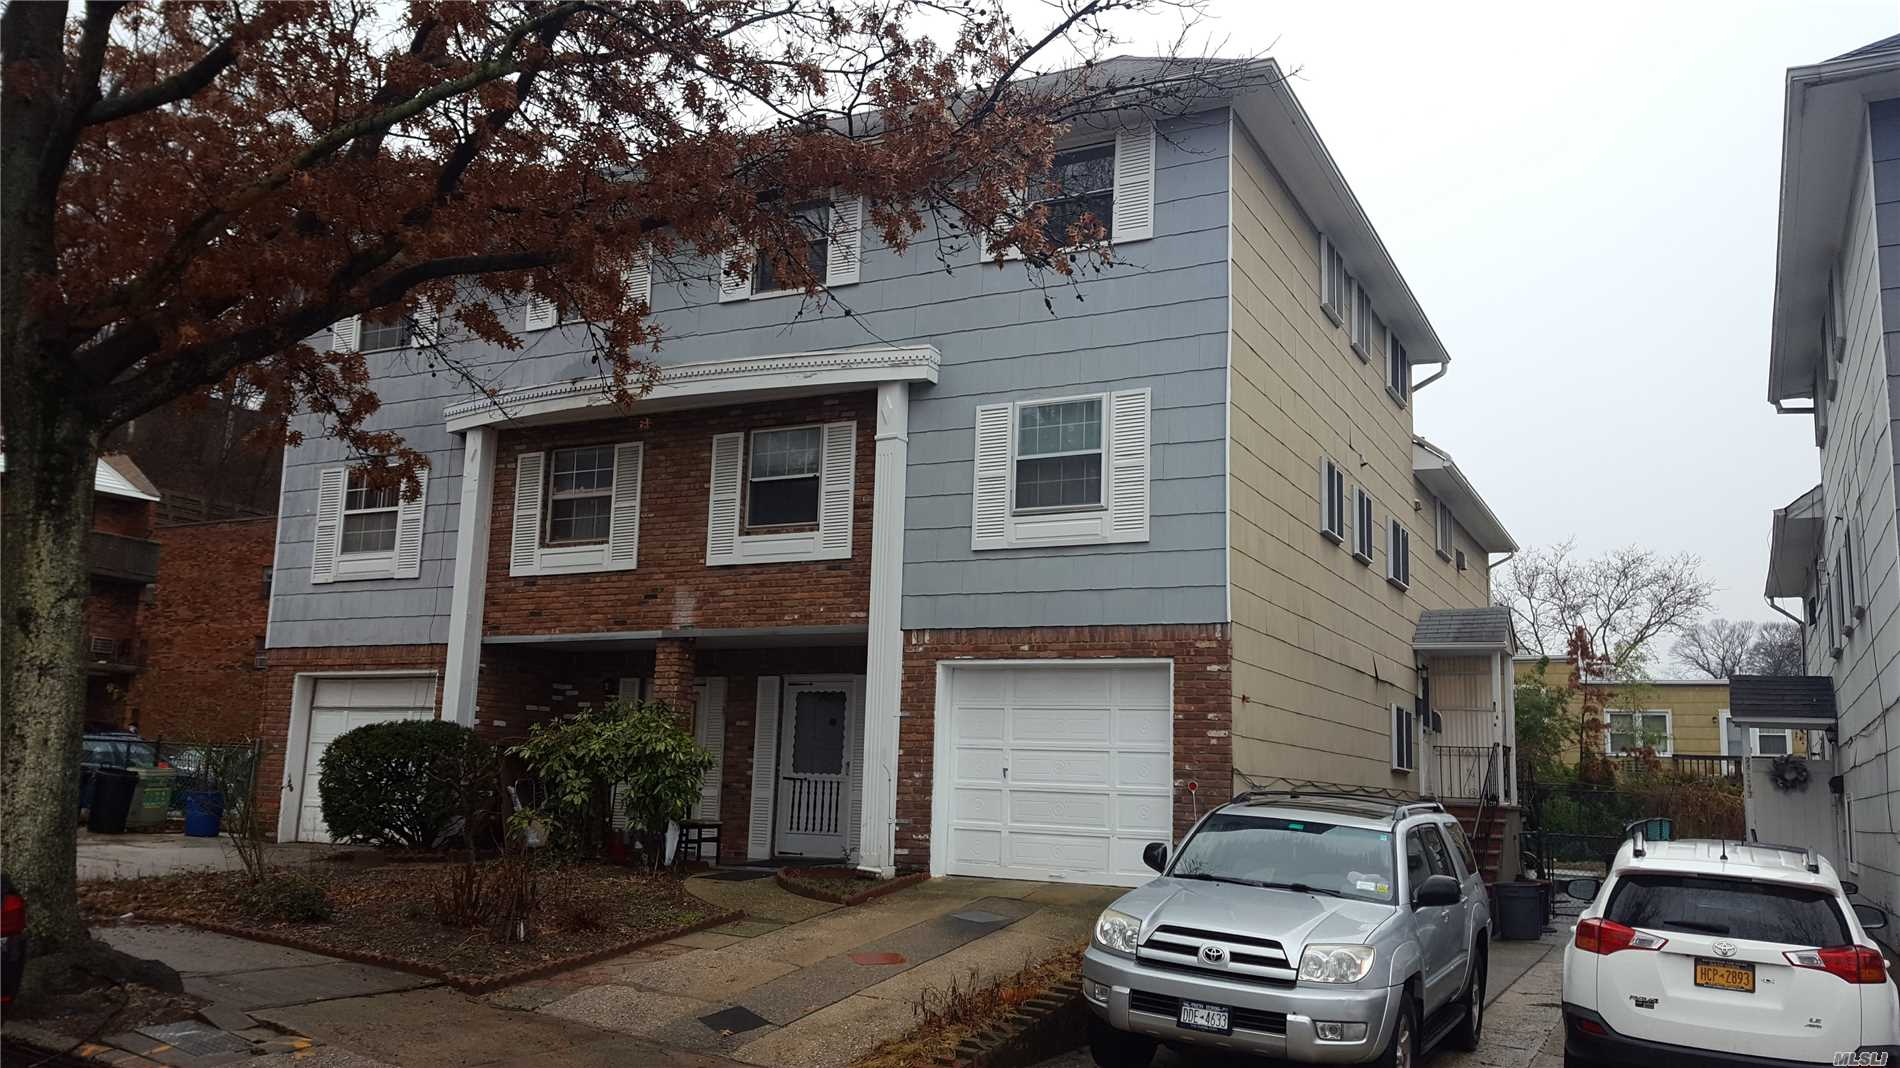 Desirable Split Style(Duplex Over Triplex) In Douglaston Plaza Area. Sunny And Bright Income Produce Property - Legal 2 Family. Units Need Upgrade And Decorations Jobs In Kitchens And Baths, But In Good Shape.